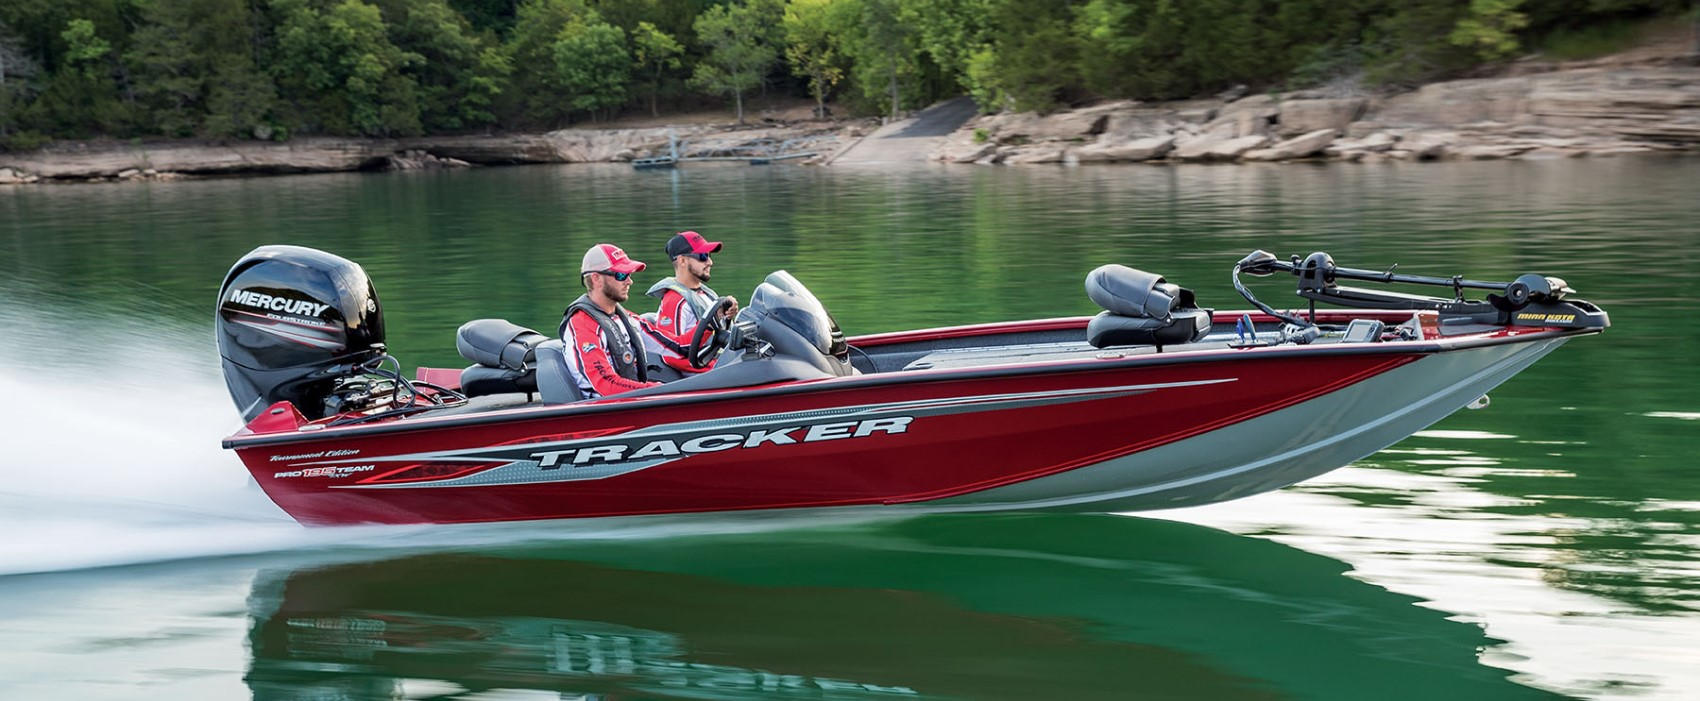 2020 Tracker Bass Panfish Boats Pro Team 195 Tournament Edition Sundown Marine